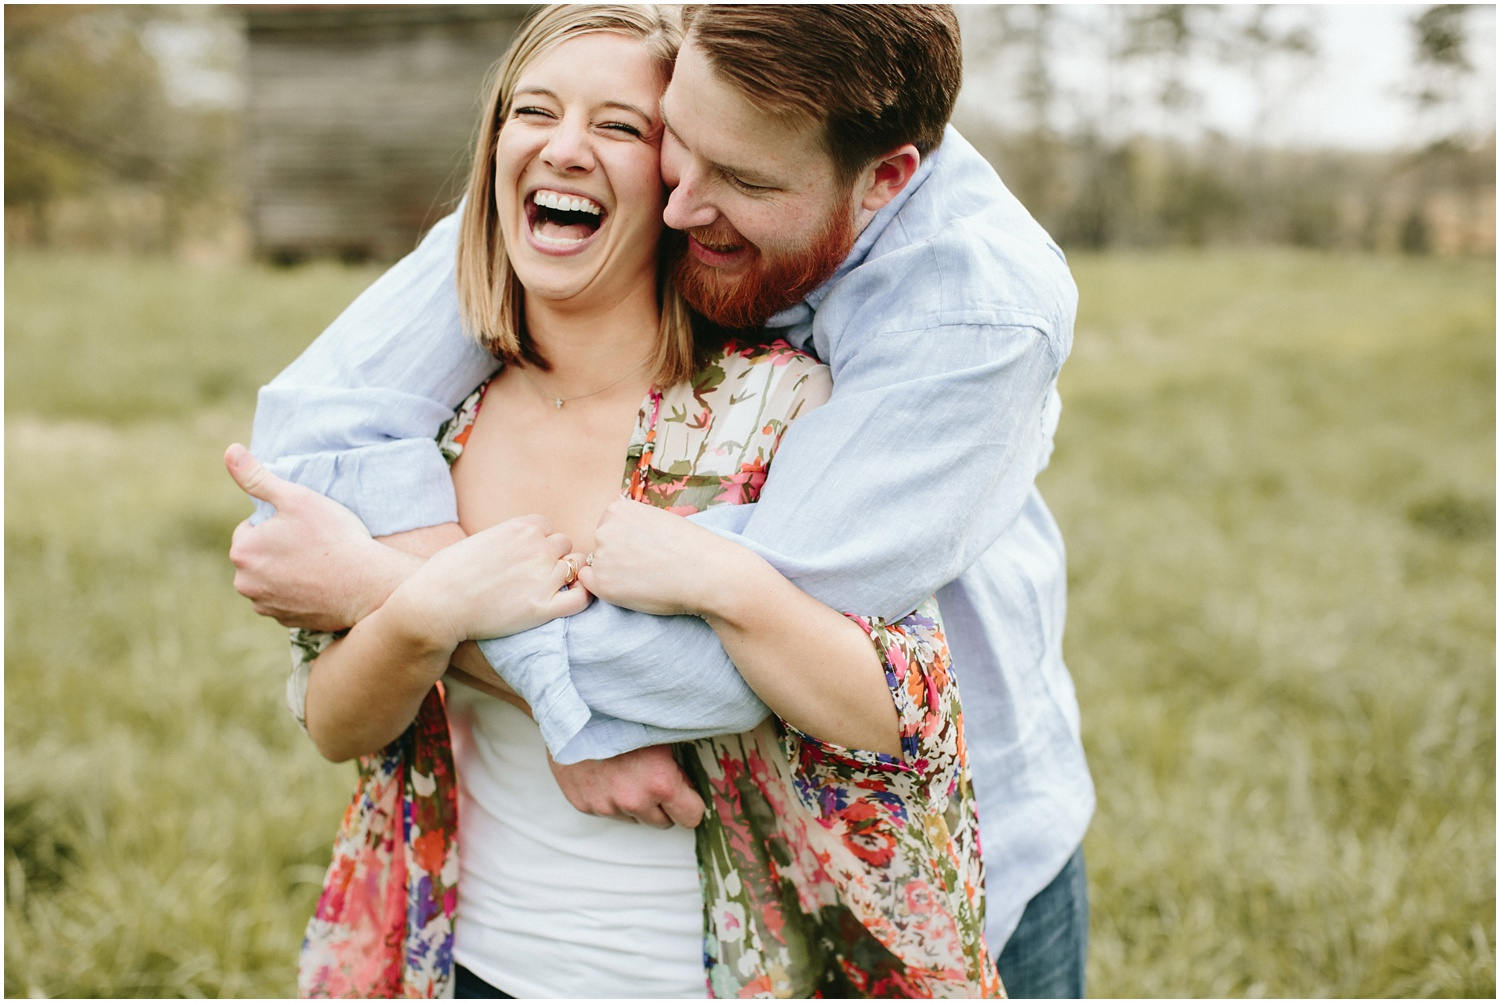 The Ivy Place Engagment | Amore Vita Photography_0006.jpg